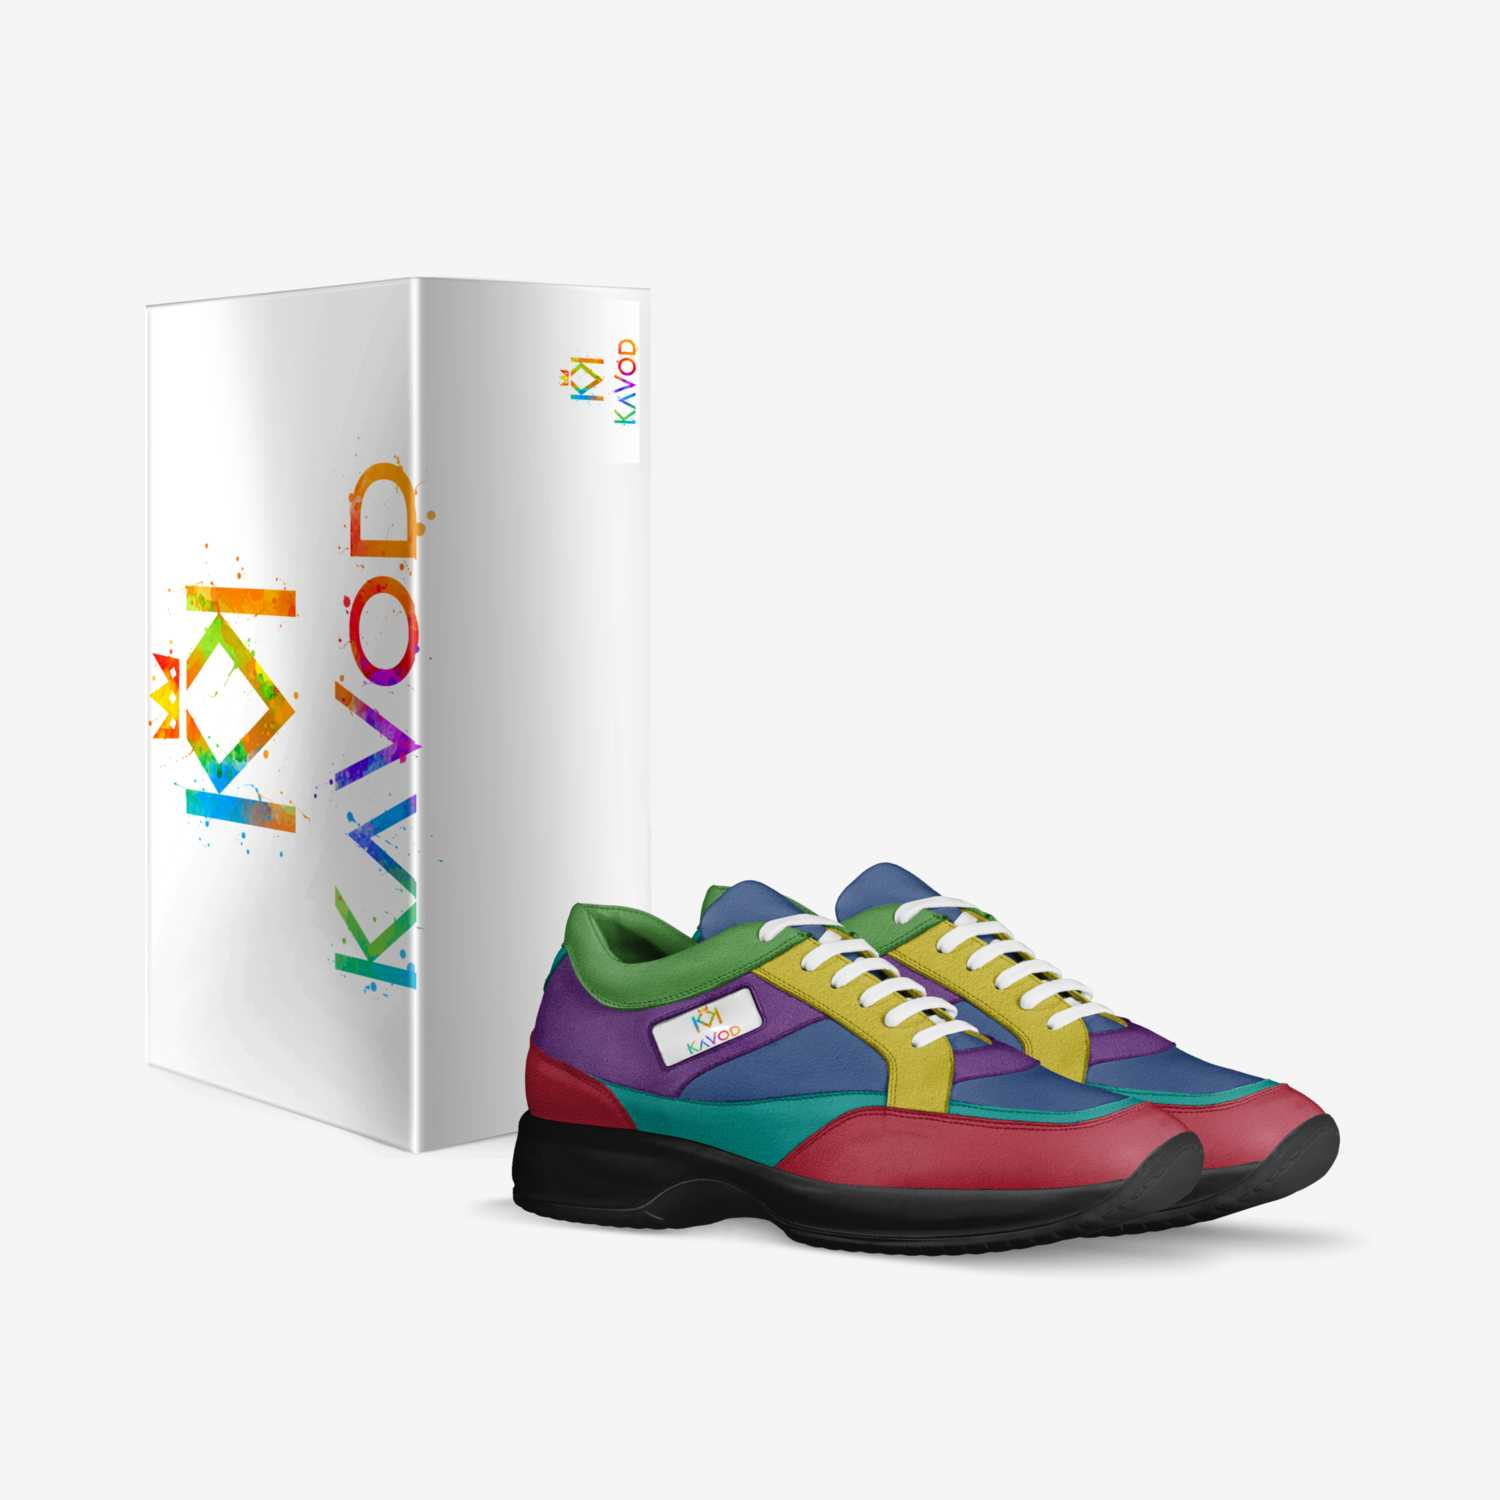 KaVod Collection  custom made in Italy shoes by Naim Collins | Box view